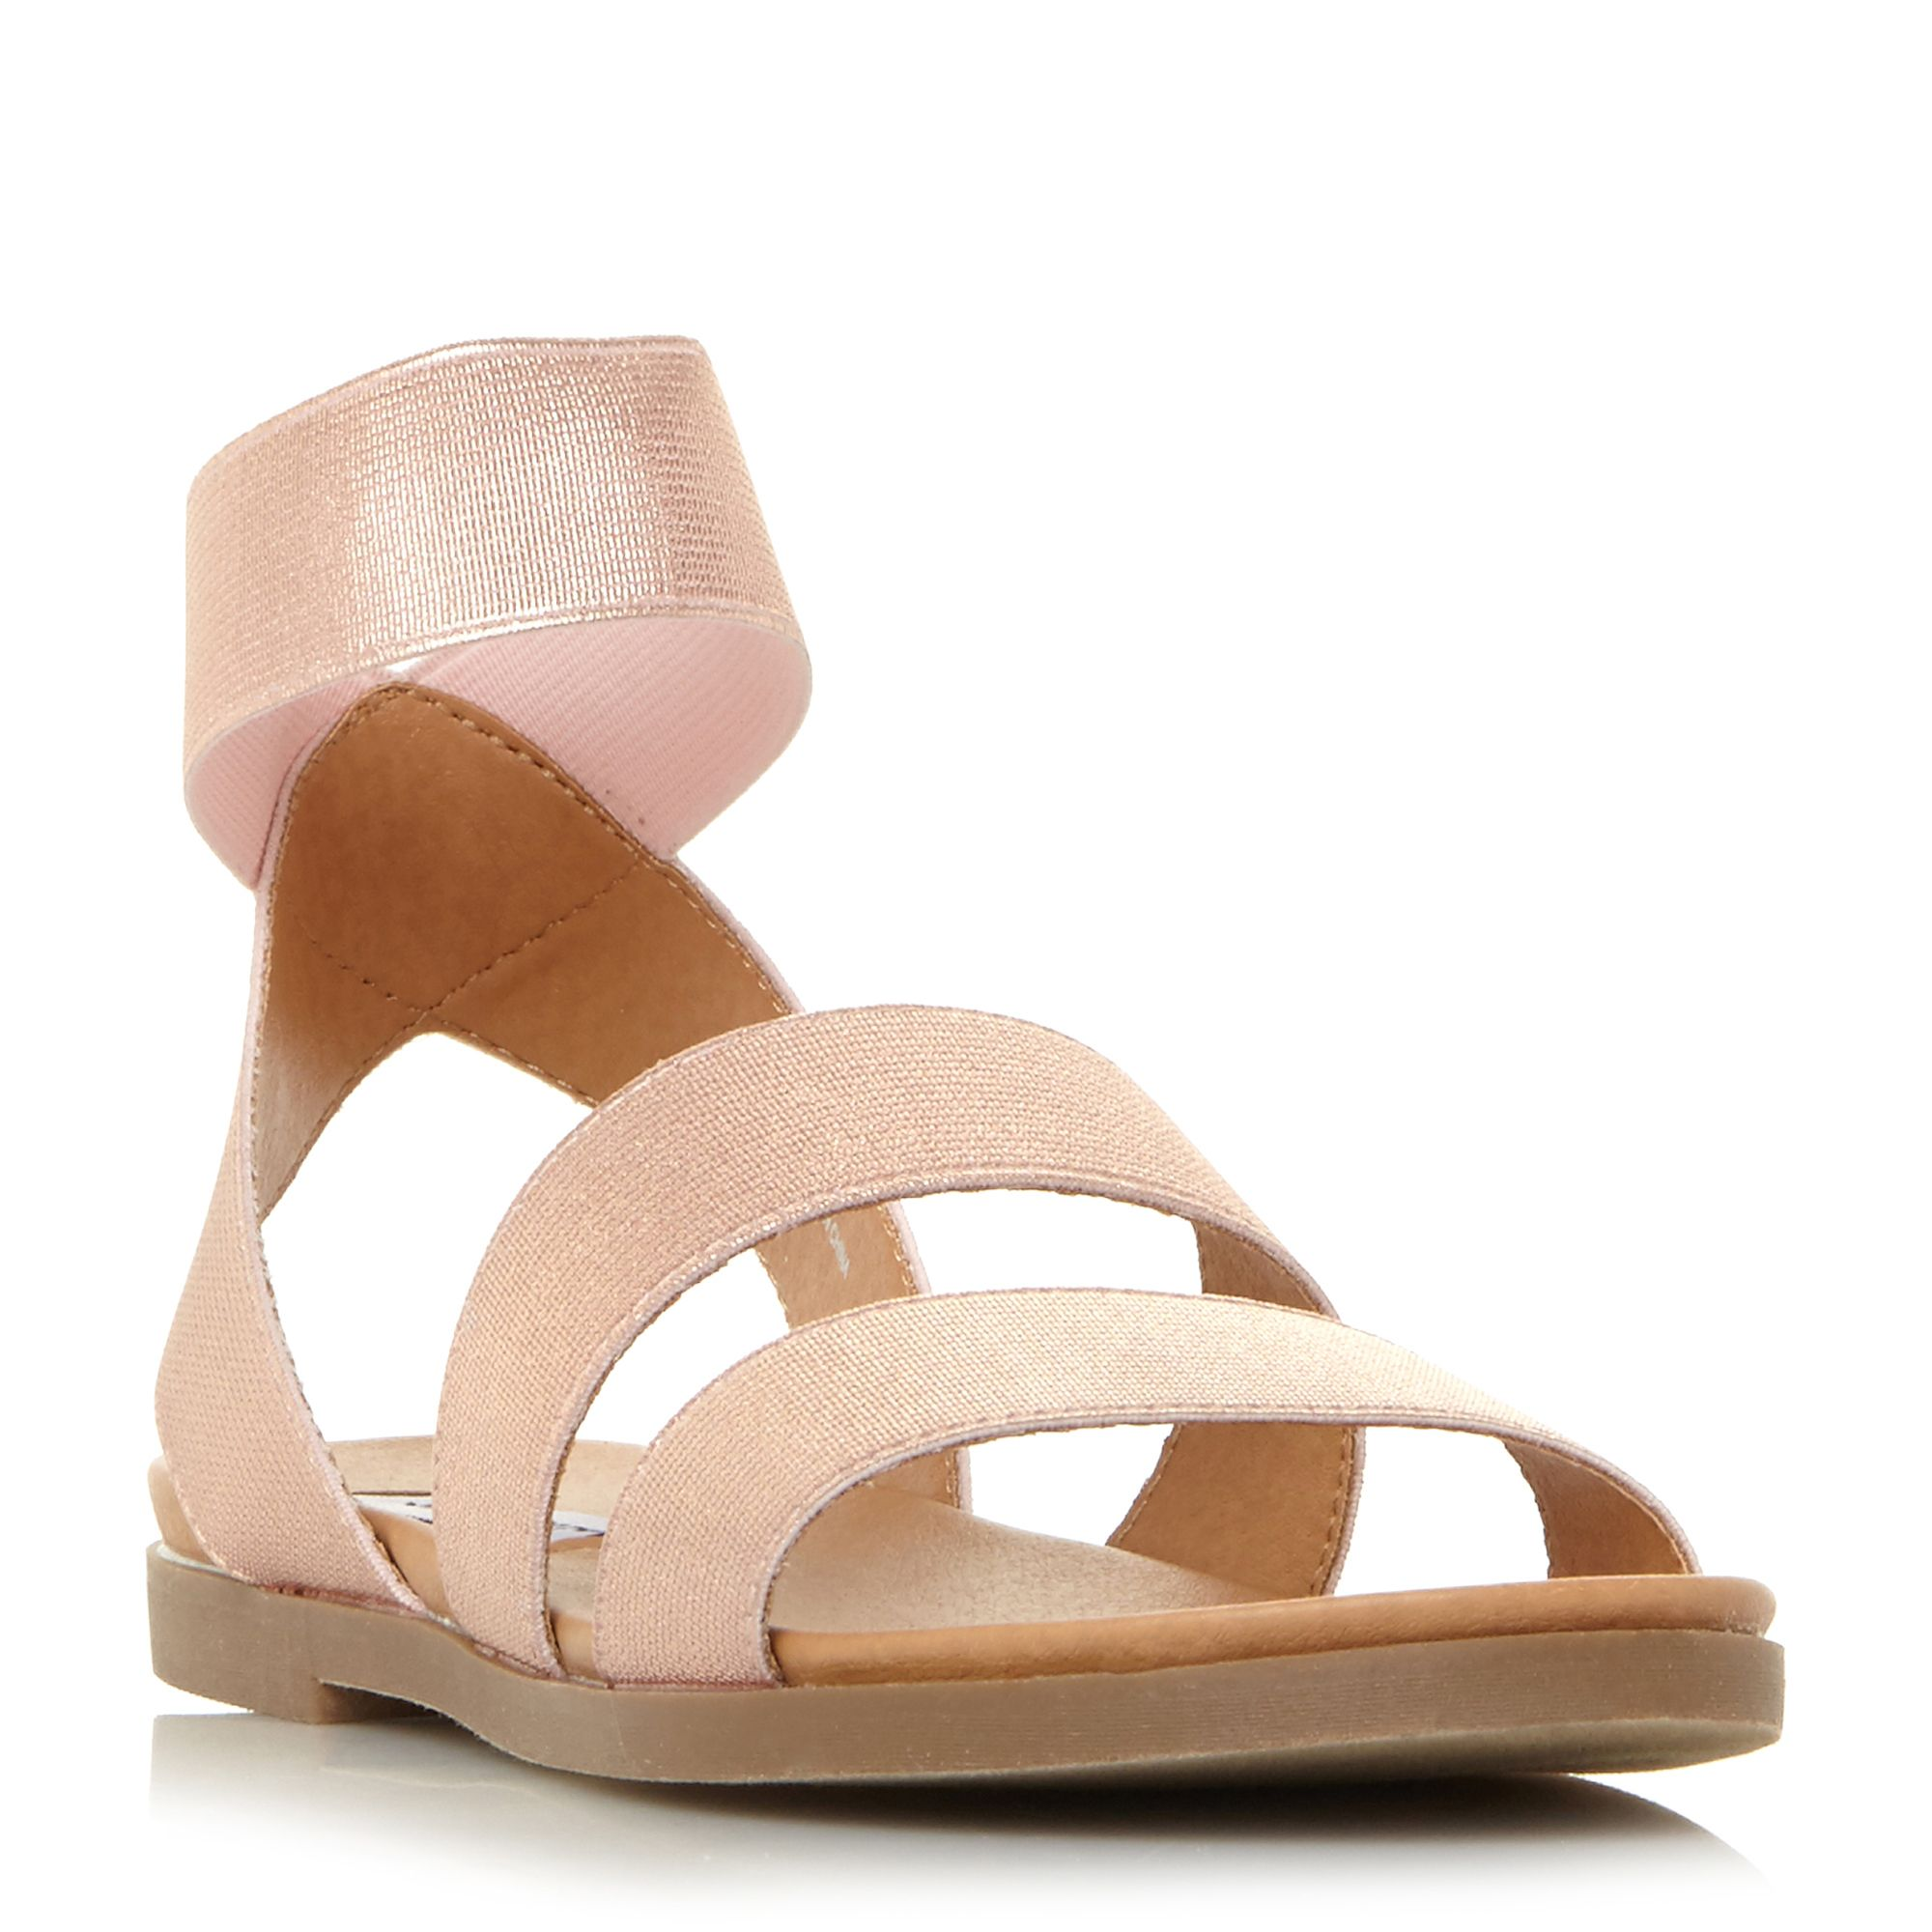 Steve Madden Delicious Sm Elasticated Sandals, Silverlic